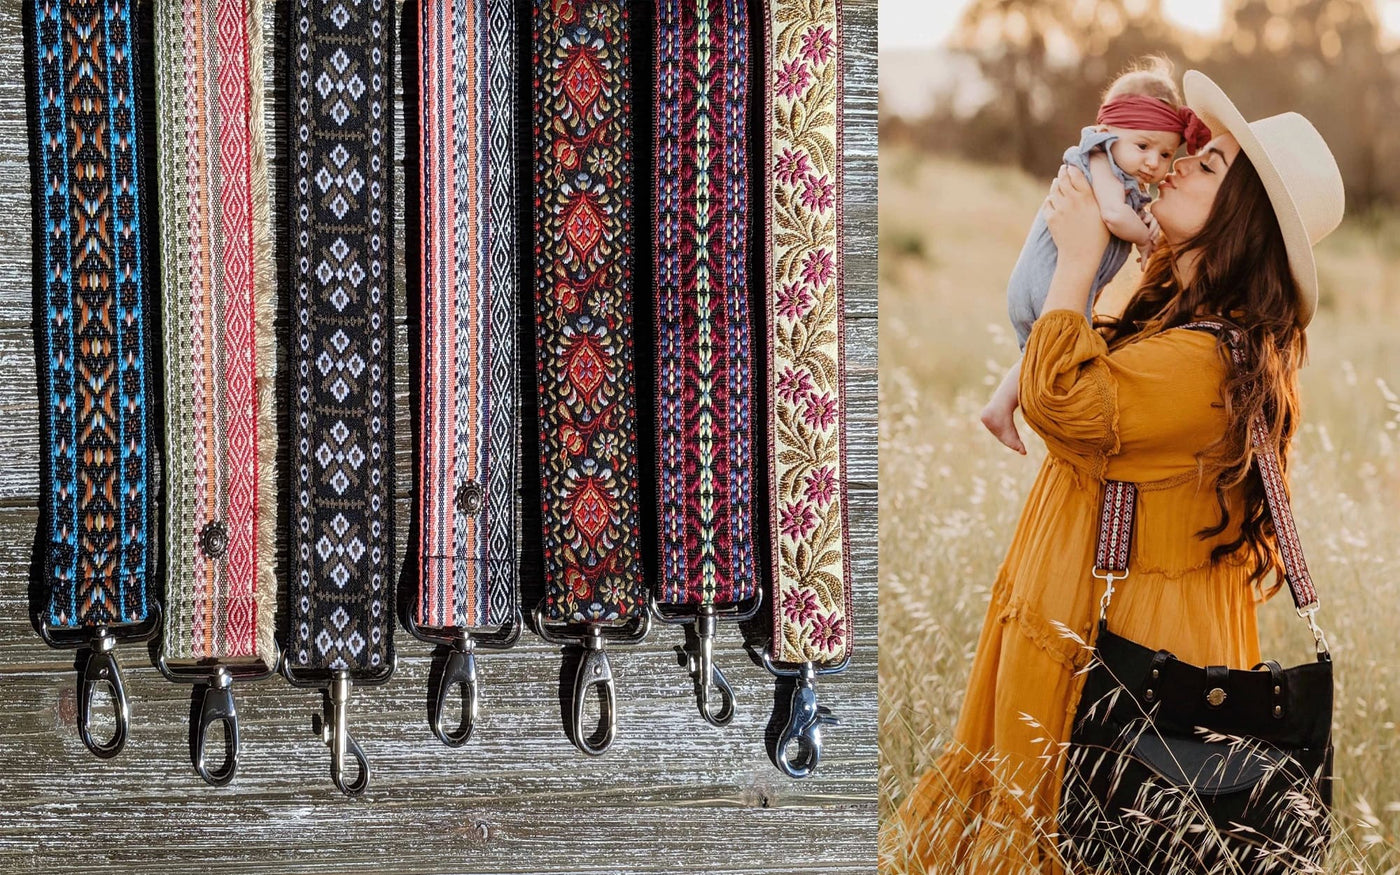 Split image showing assortment of six Boho style, woven bag straps plus image of mom holding her baby while wearing black Carry All Tote Trio with black, blue and orange patterned strap.